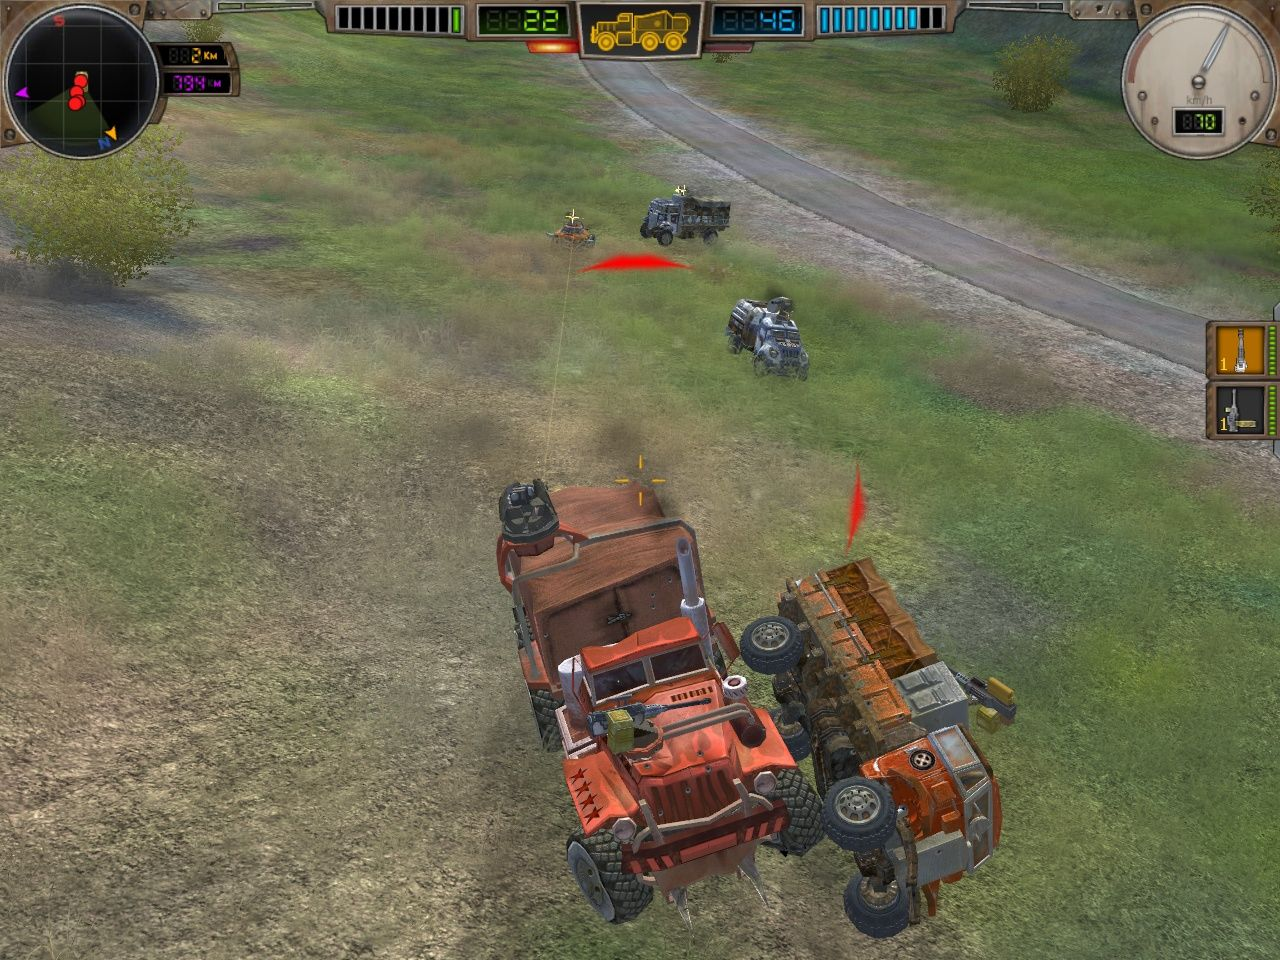 Hard Truck: Apocalypse - Rise of Clans Windows Combat against multiple opponents. Bashing someone out of the way is often the best tactic.